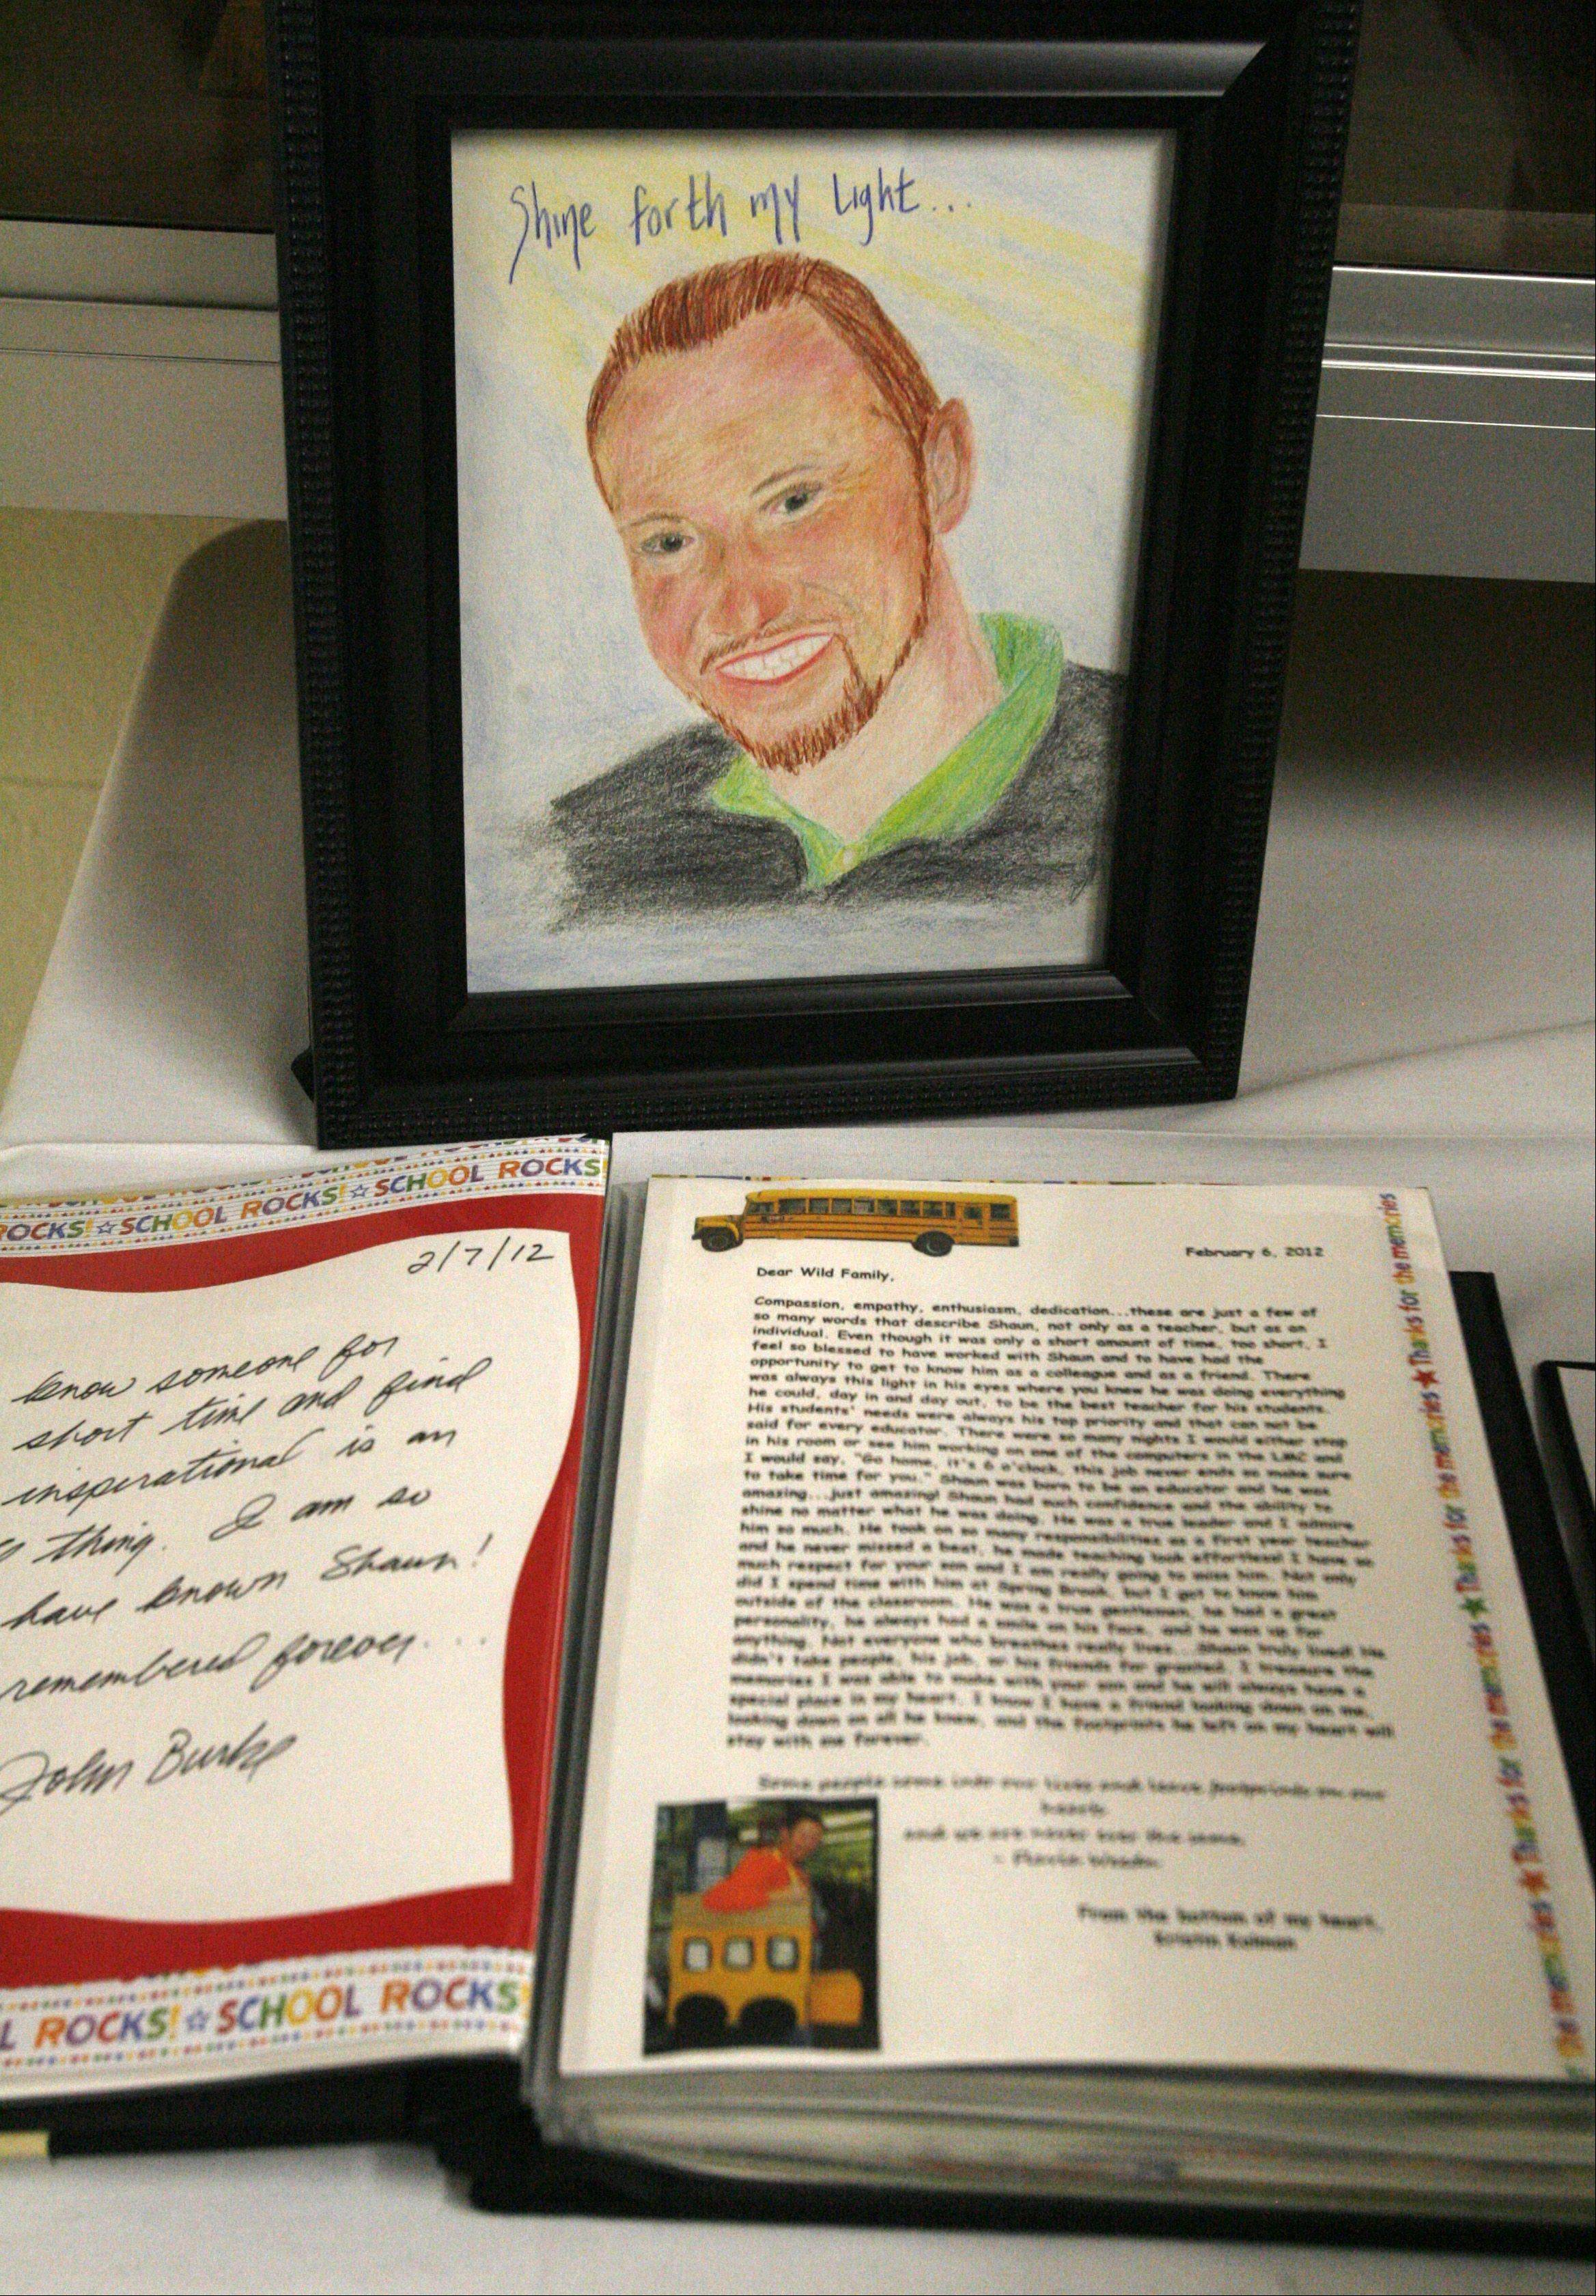 Students from Spring Brook Elementary school wrote notes and made cards for their teacher, Shaun Wild, that were presented to his parents after th